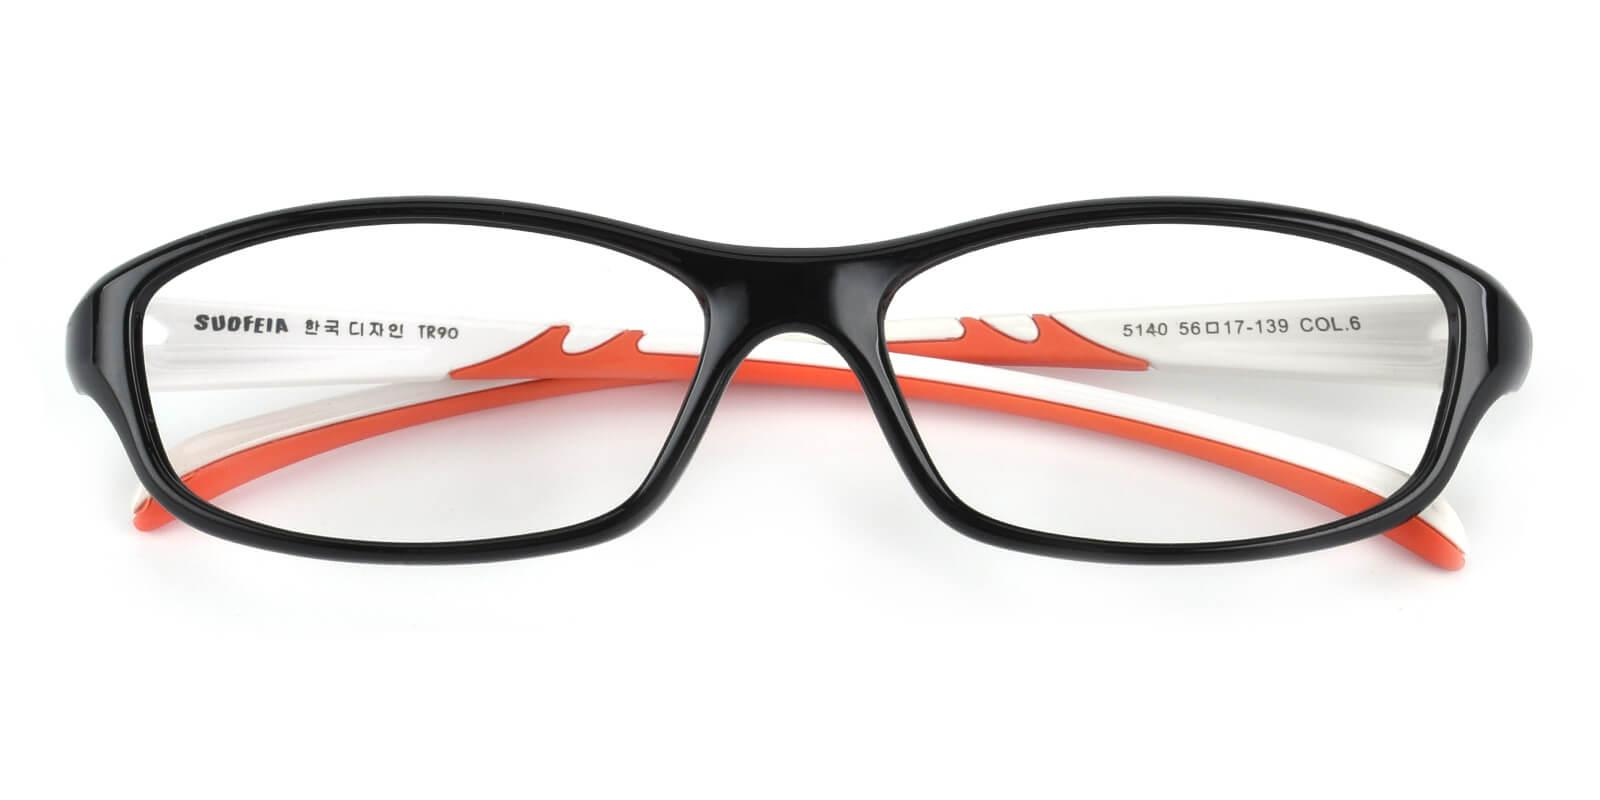 Hank-Black-Rectangle-TR-Eyeglasses-detail